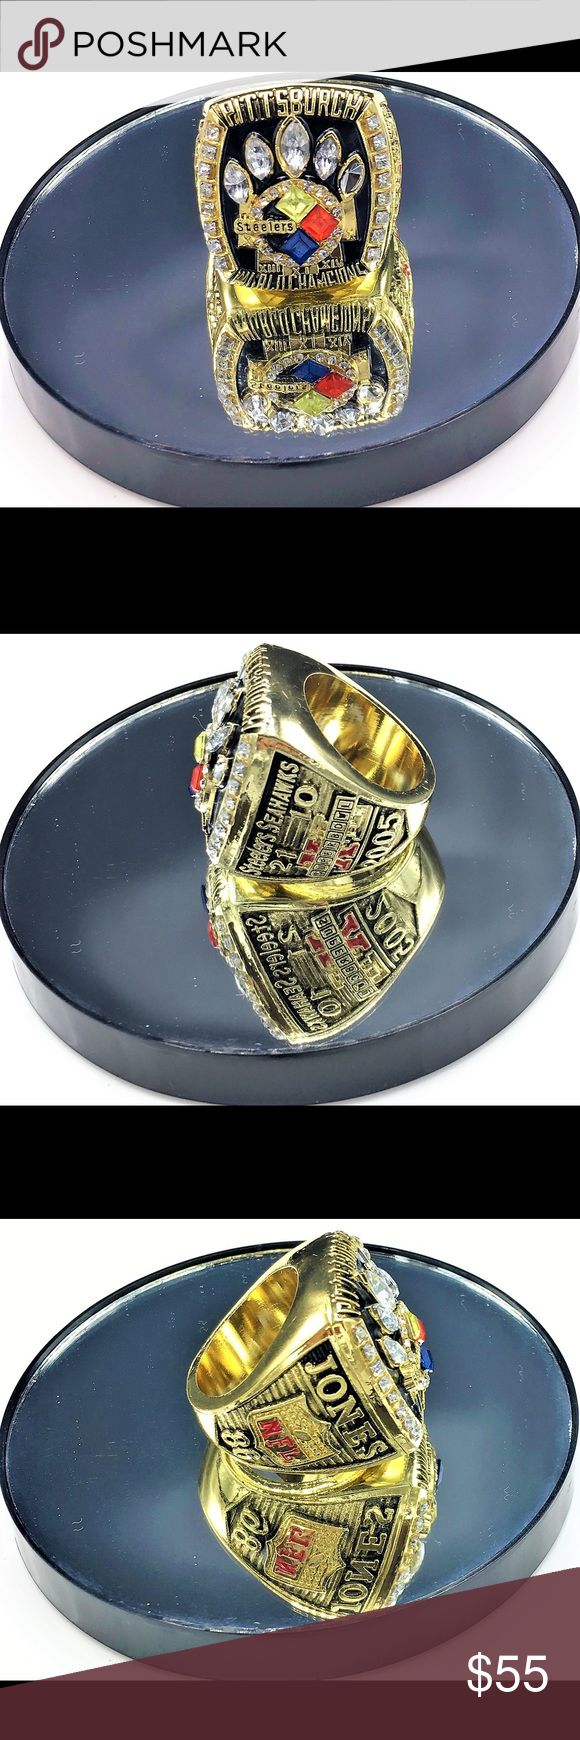 """Super Bowl 40 (XL) Replica Ring - Pitt Steelers Super Bowl 40 (XL) Replica Ring  Pittsburgh Steelers 21 Seattle Seahawks 10 Feb. 5, 2006  """"Big Ben captures his first""""  Size 11 but meant for Collectible Souvenir. Perfect Gift for any true Pittsburgh Steelers Fan. Accessories Jewelry"""